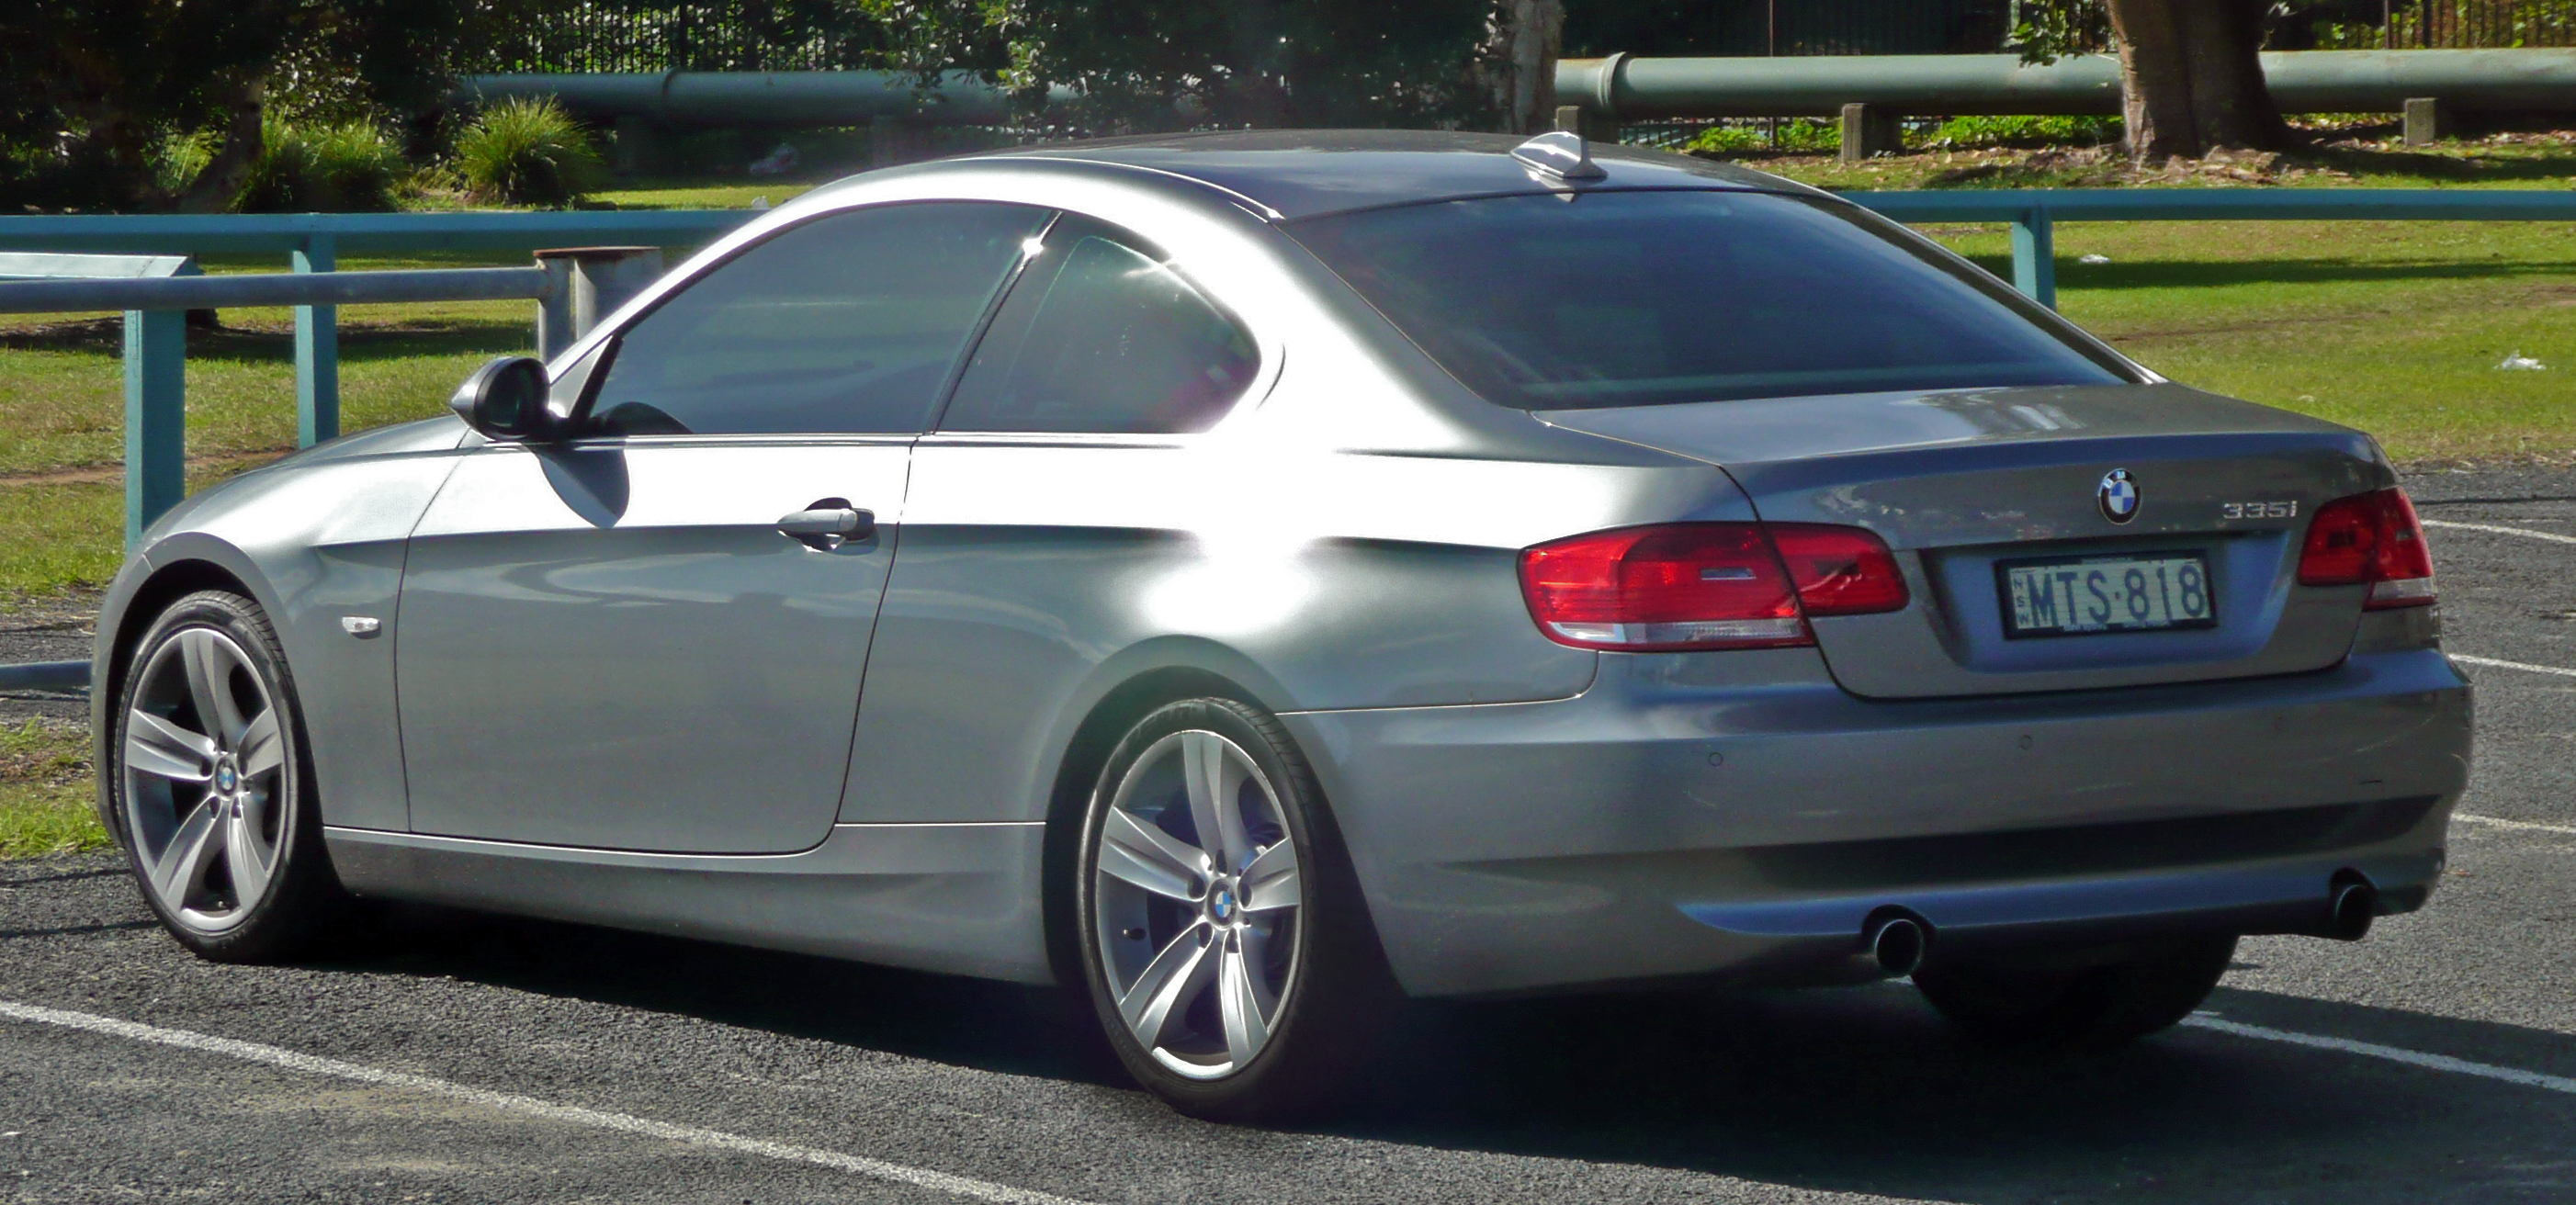 BMW 335i Coupe (E92)